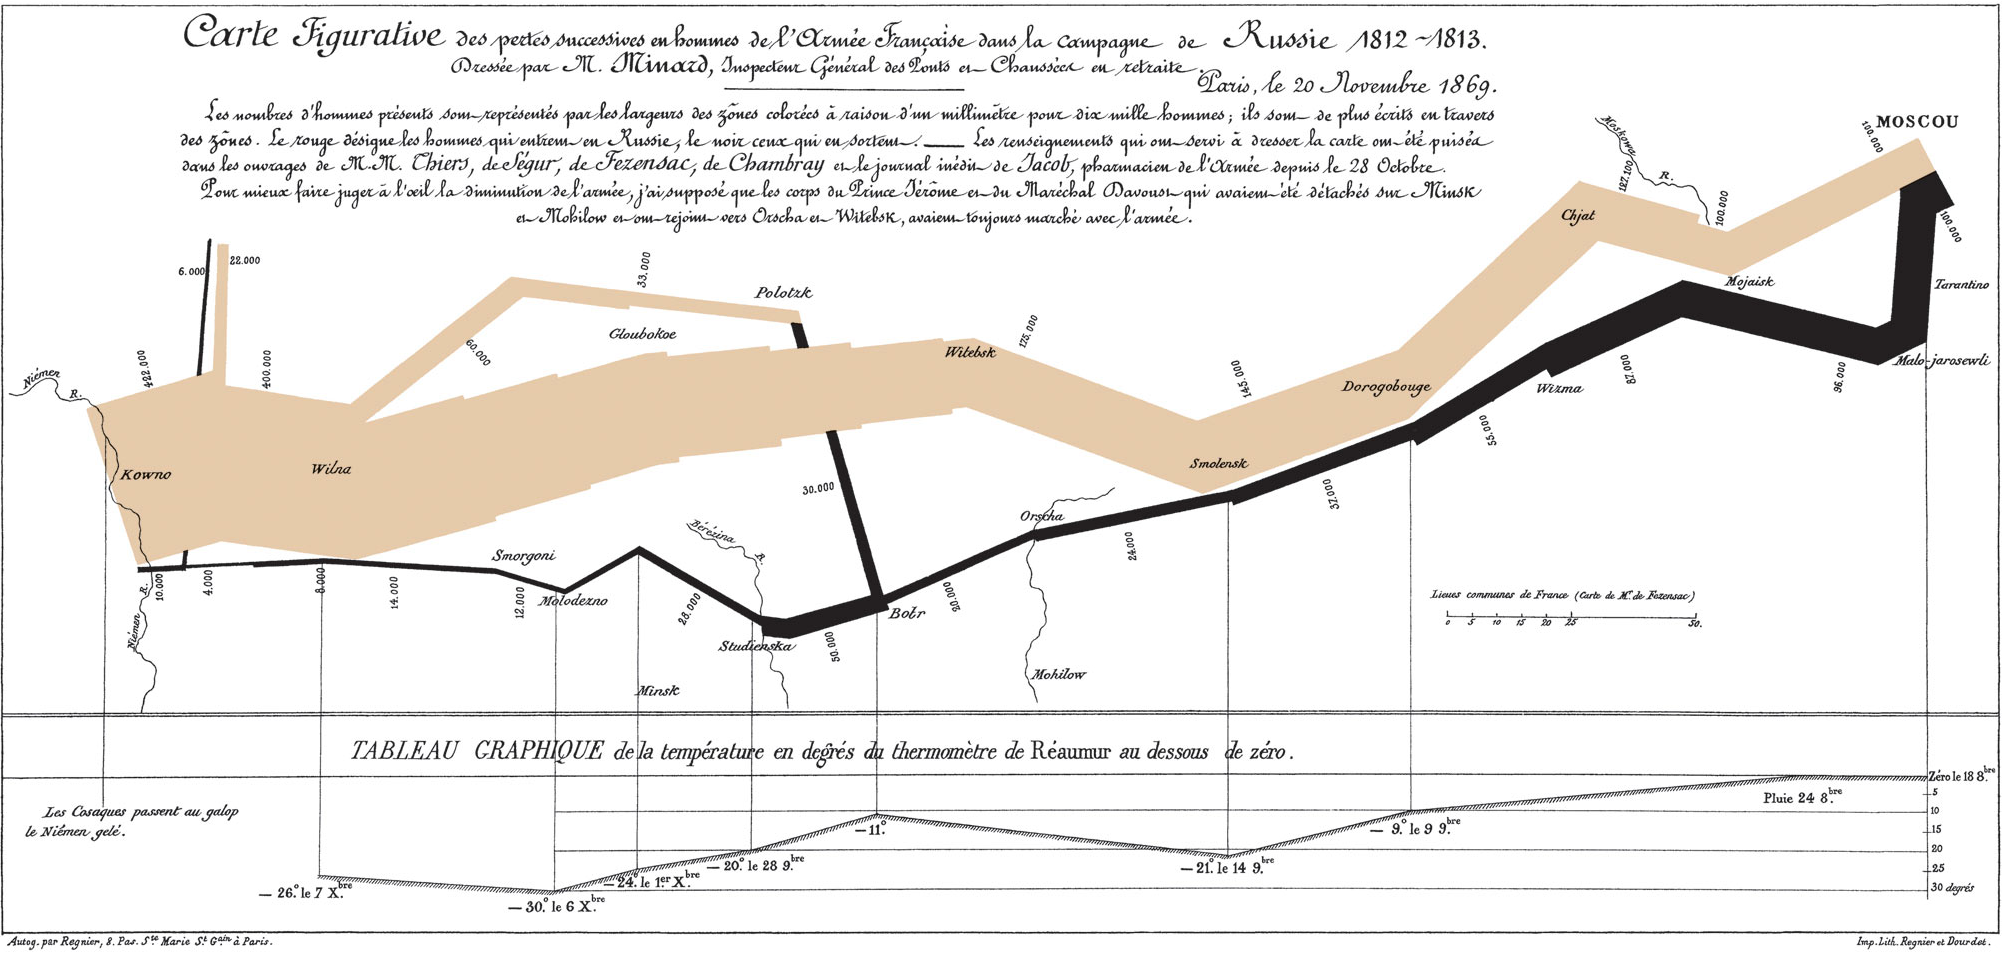 Figurative map of the successive losses of the French Army in the Russian campaign, 1812-1813